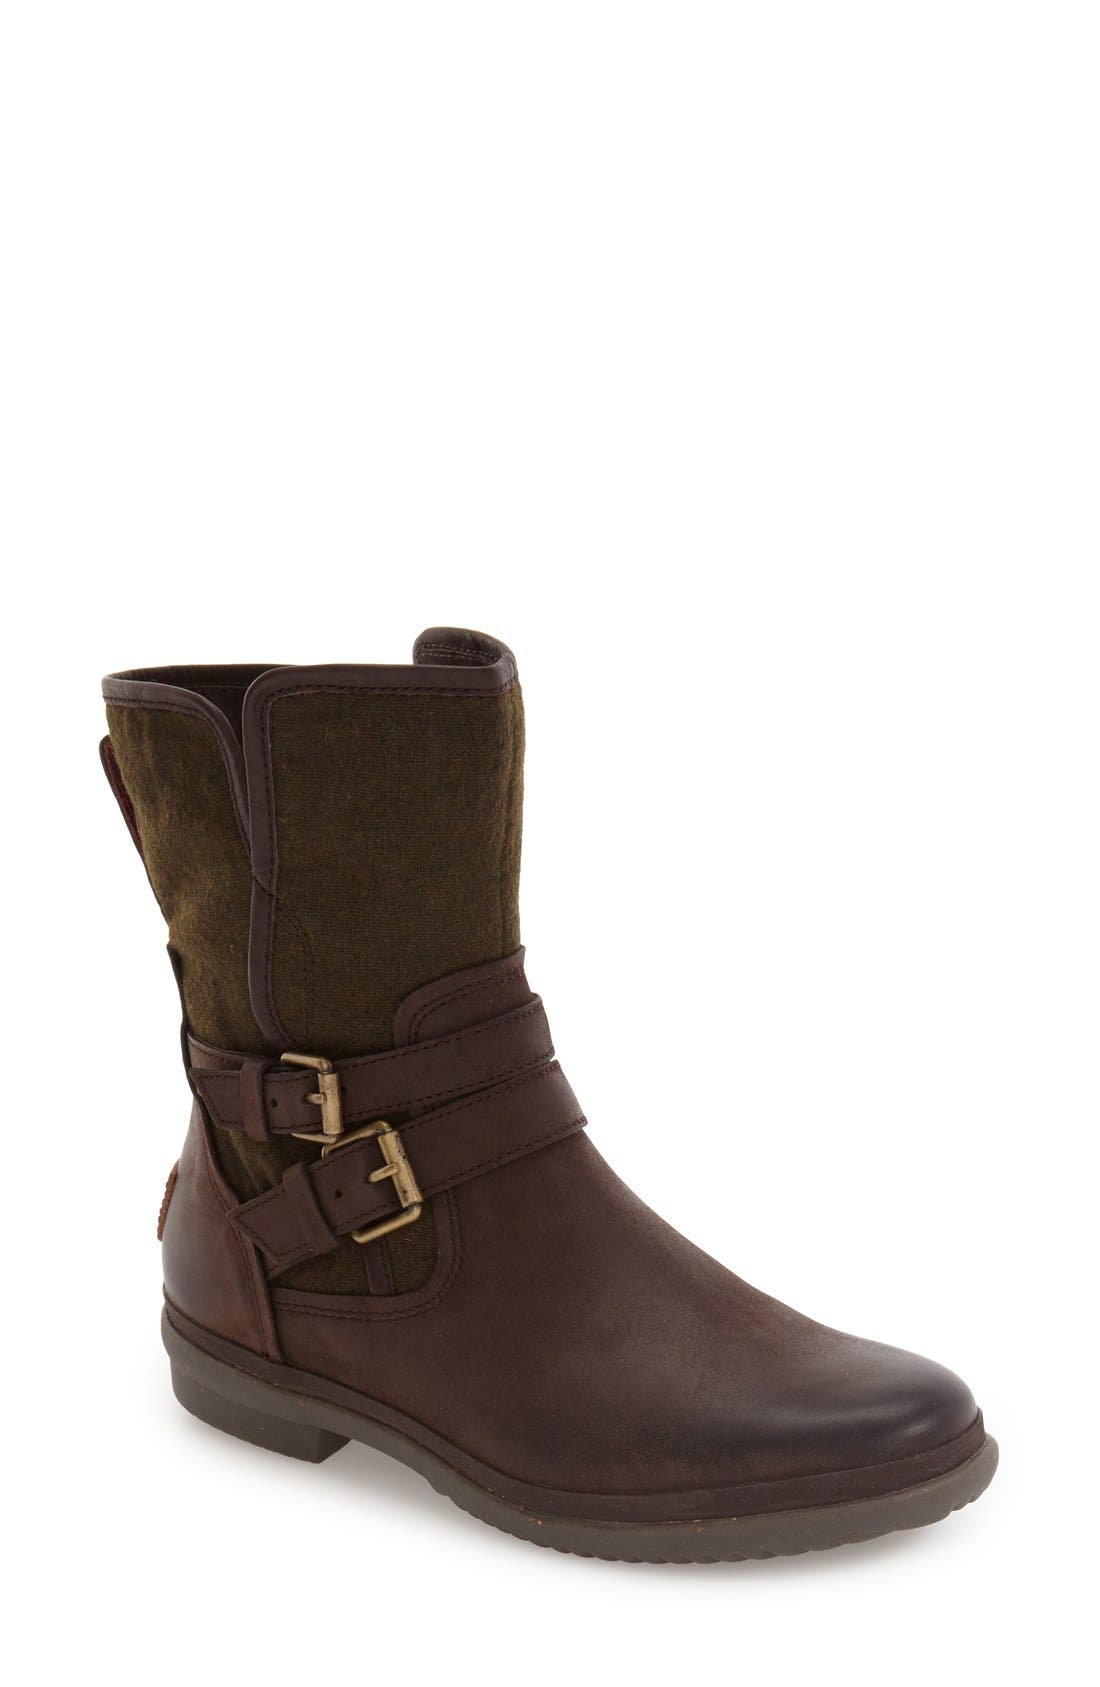 Simmens Waterproof Leather Boot,                         Main,                         color, STOUT WOOL